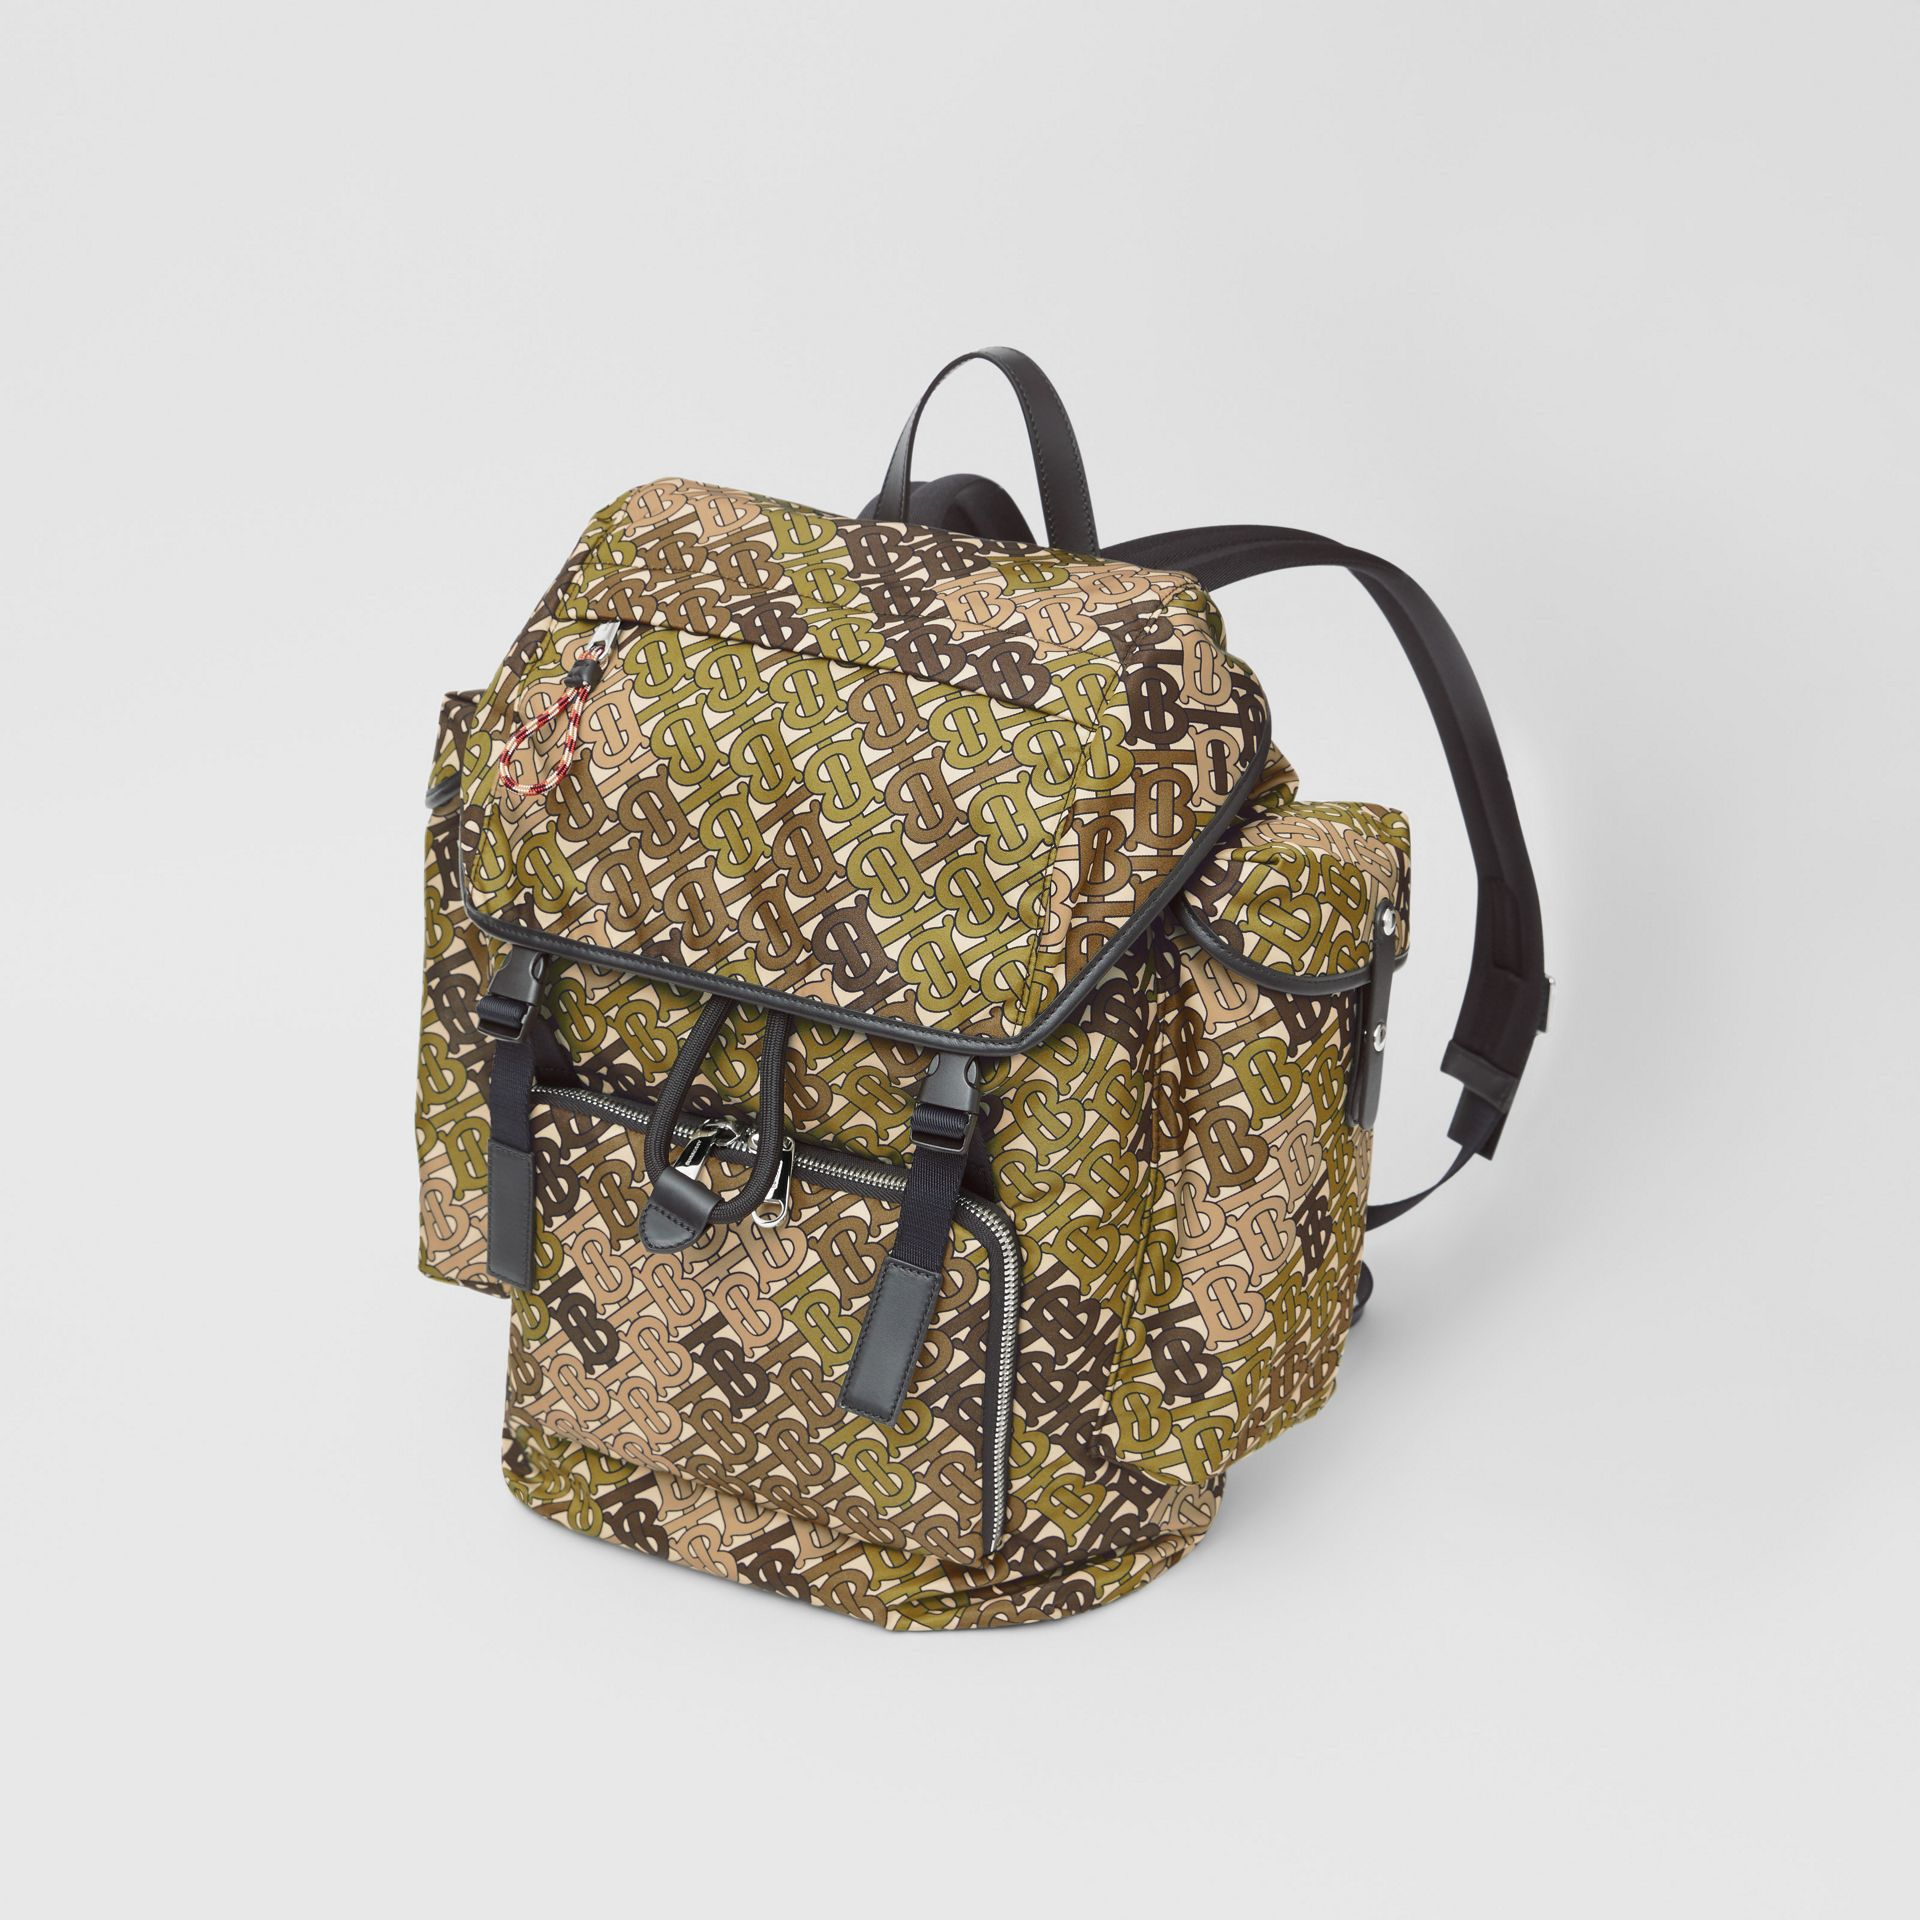 Medium Monogram Print Nylon Backpack in Khaki Green - Men | Burberry - gallery image 2